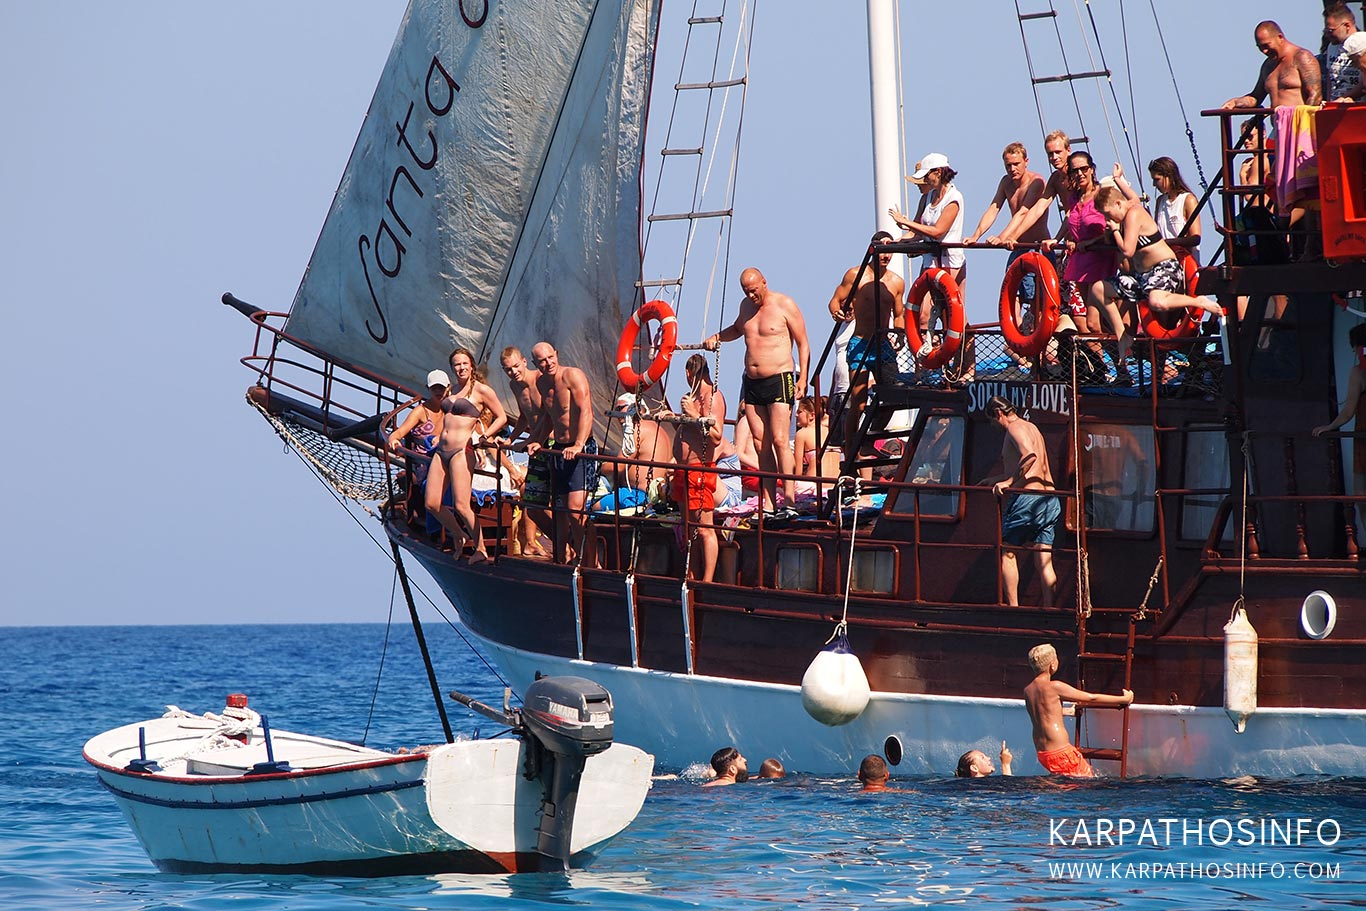 Boat excursions in Karpathos